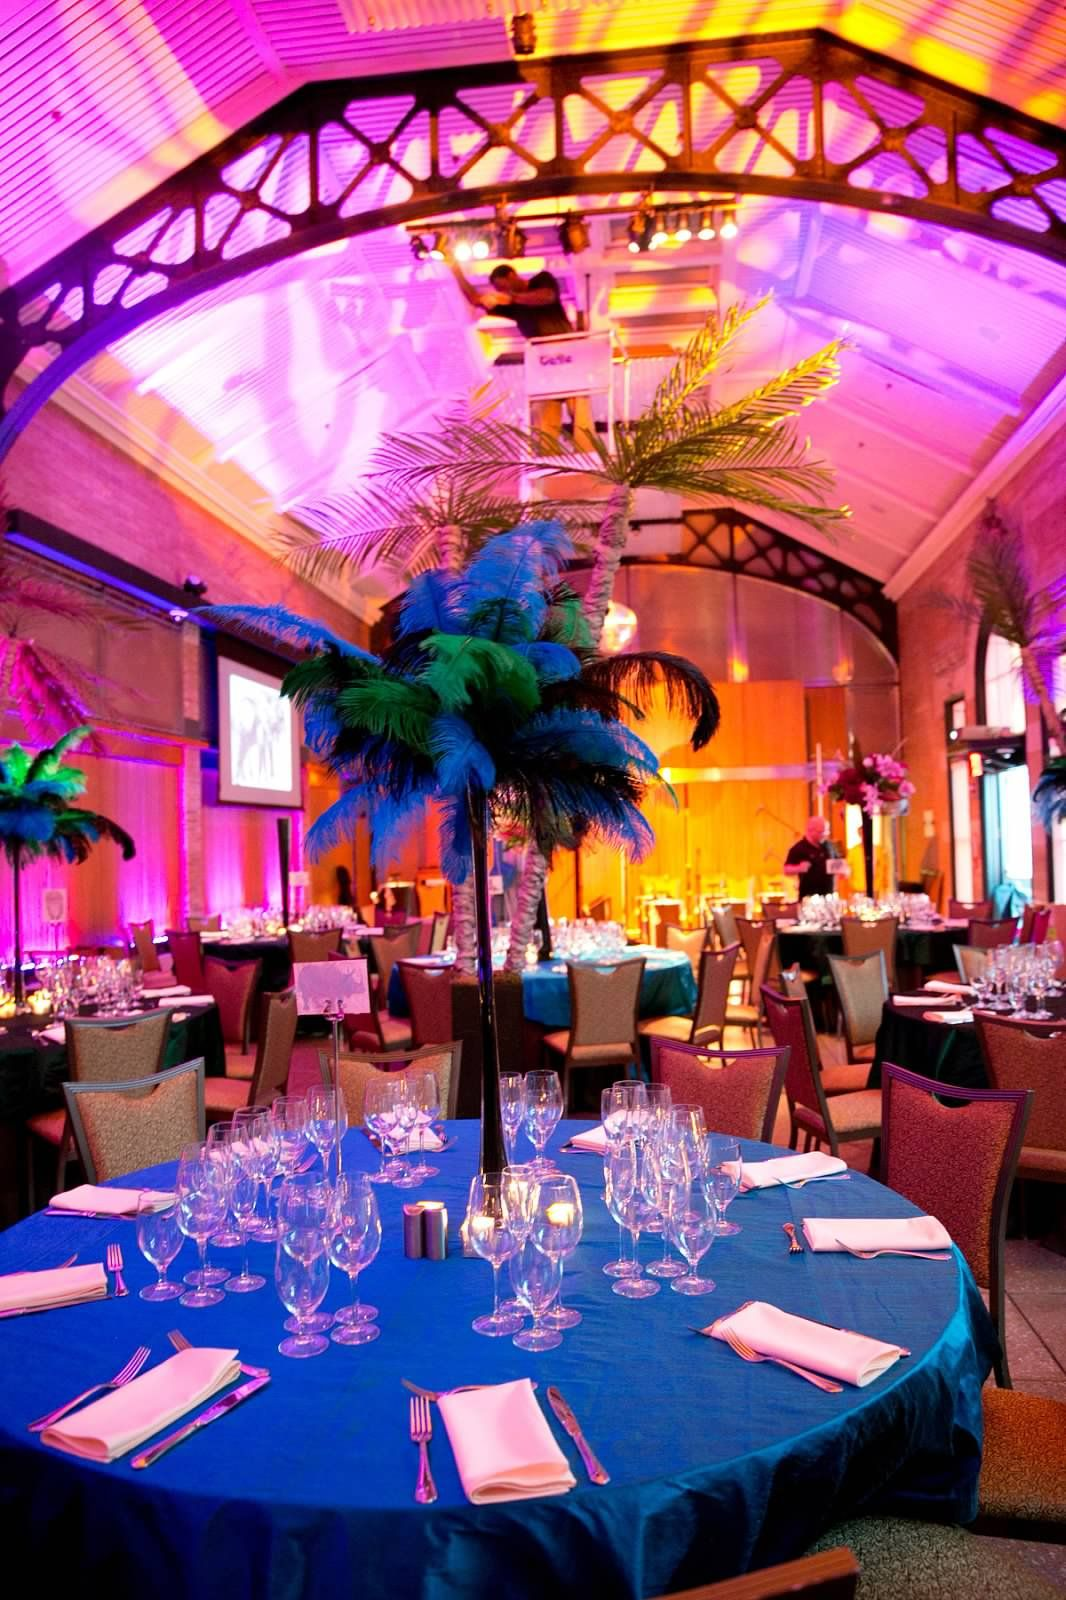 wedding reception locations nyc%0A Central Park Zoo Wedding Reception Dancing   Unique Wedding  Ideas Inspirations   Pinterest   Unique weddings  Reception and Weddings